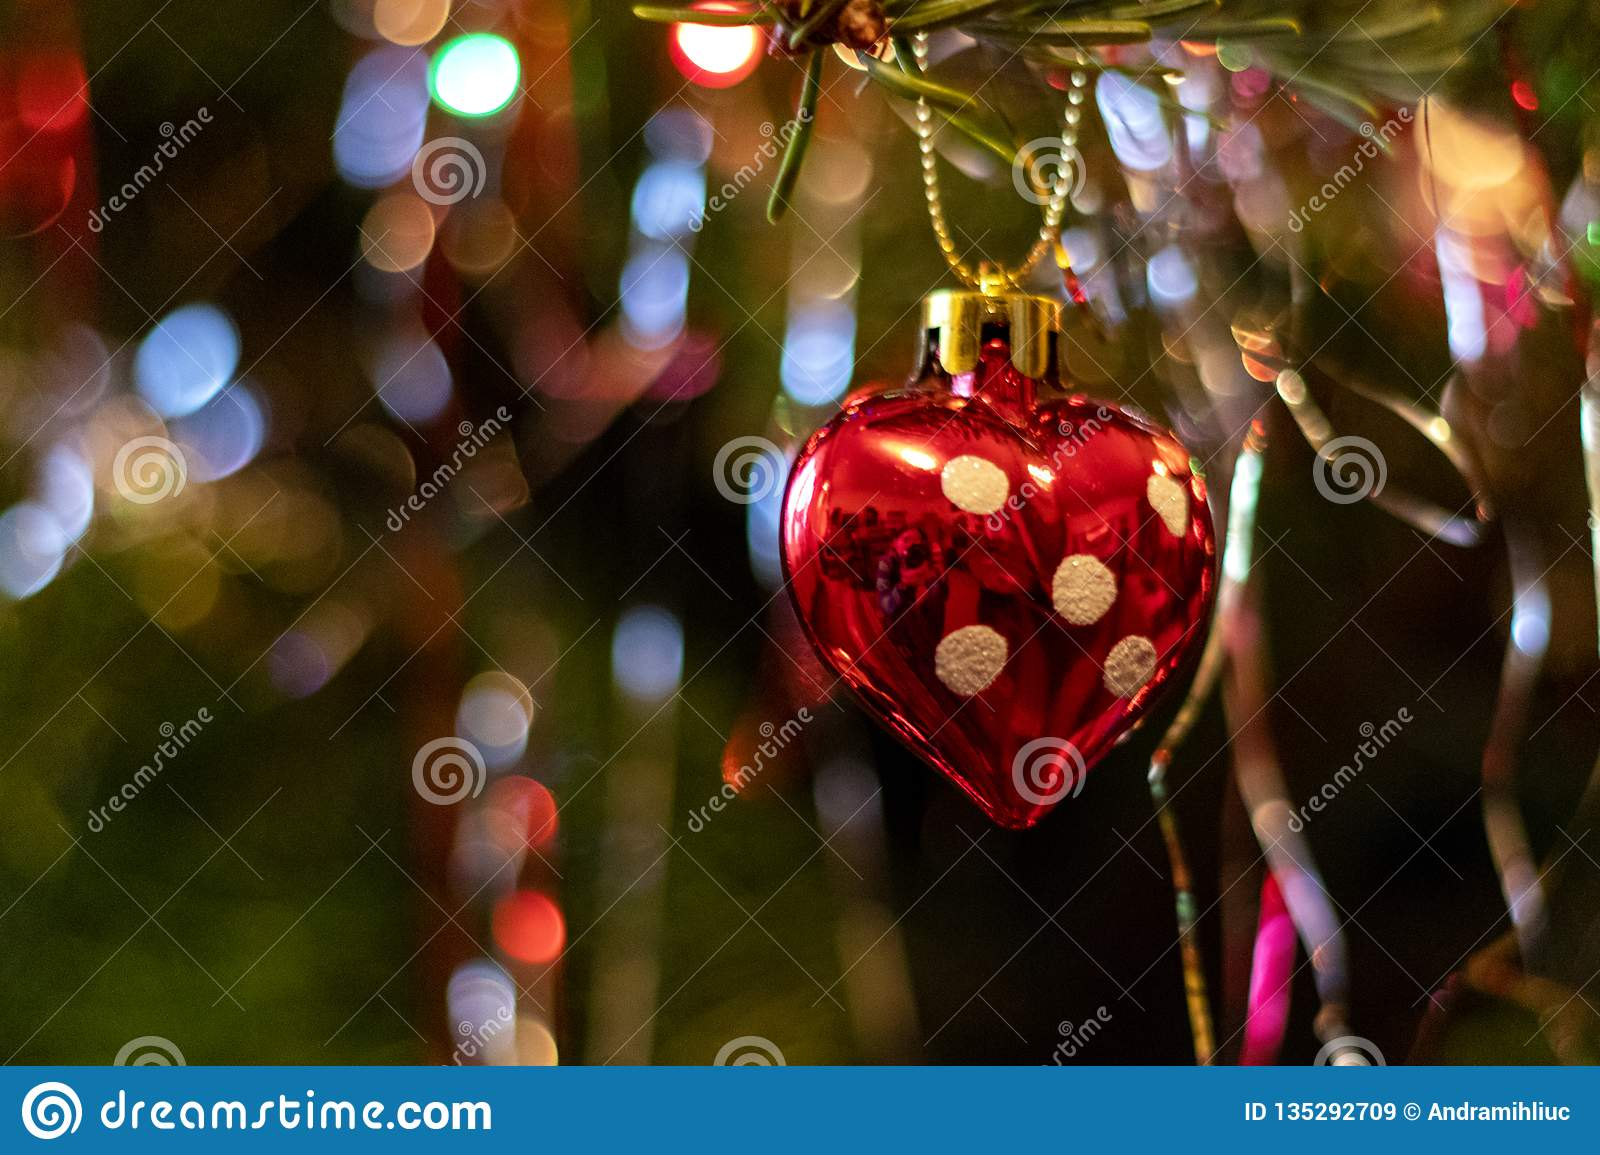 Red Heart Ornament In The Christmas Tree Stock Image